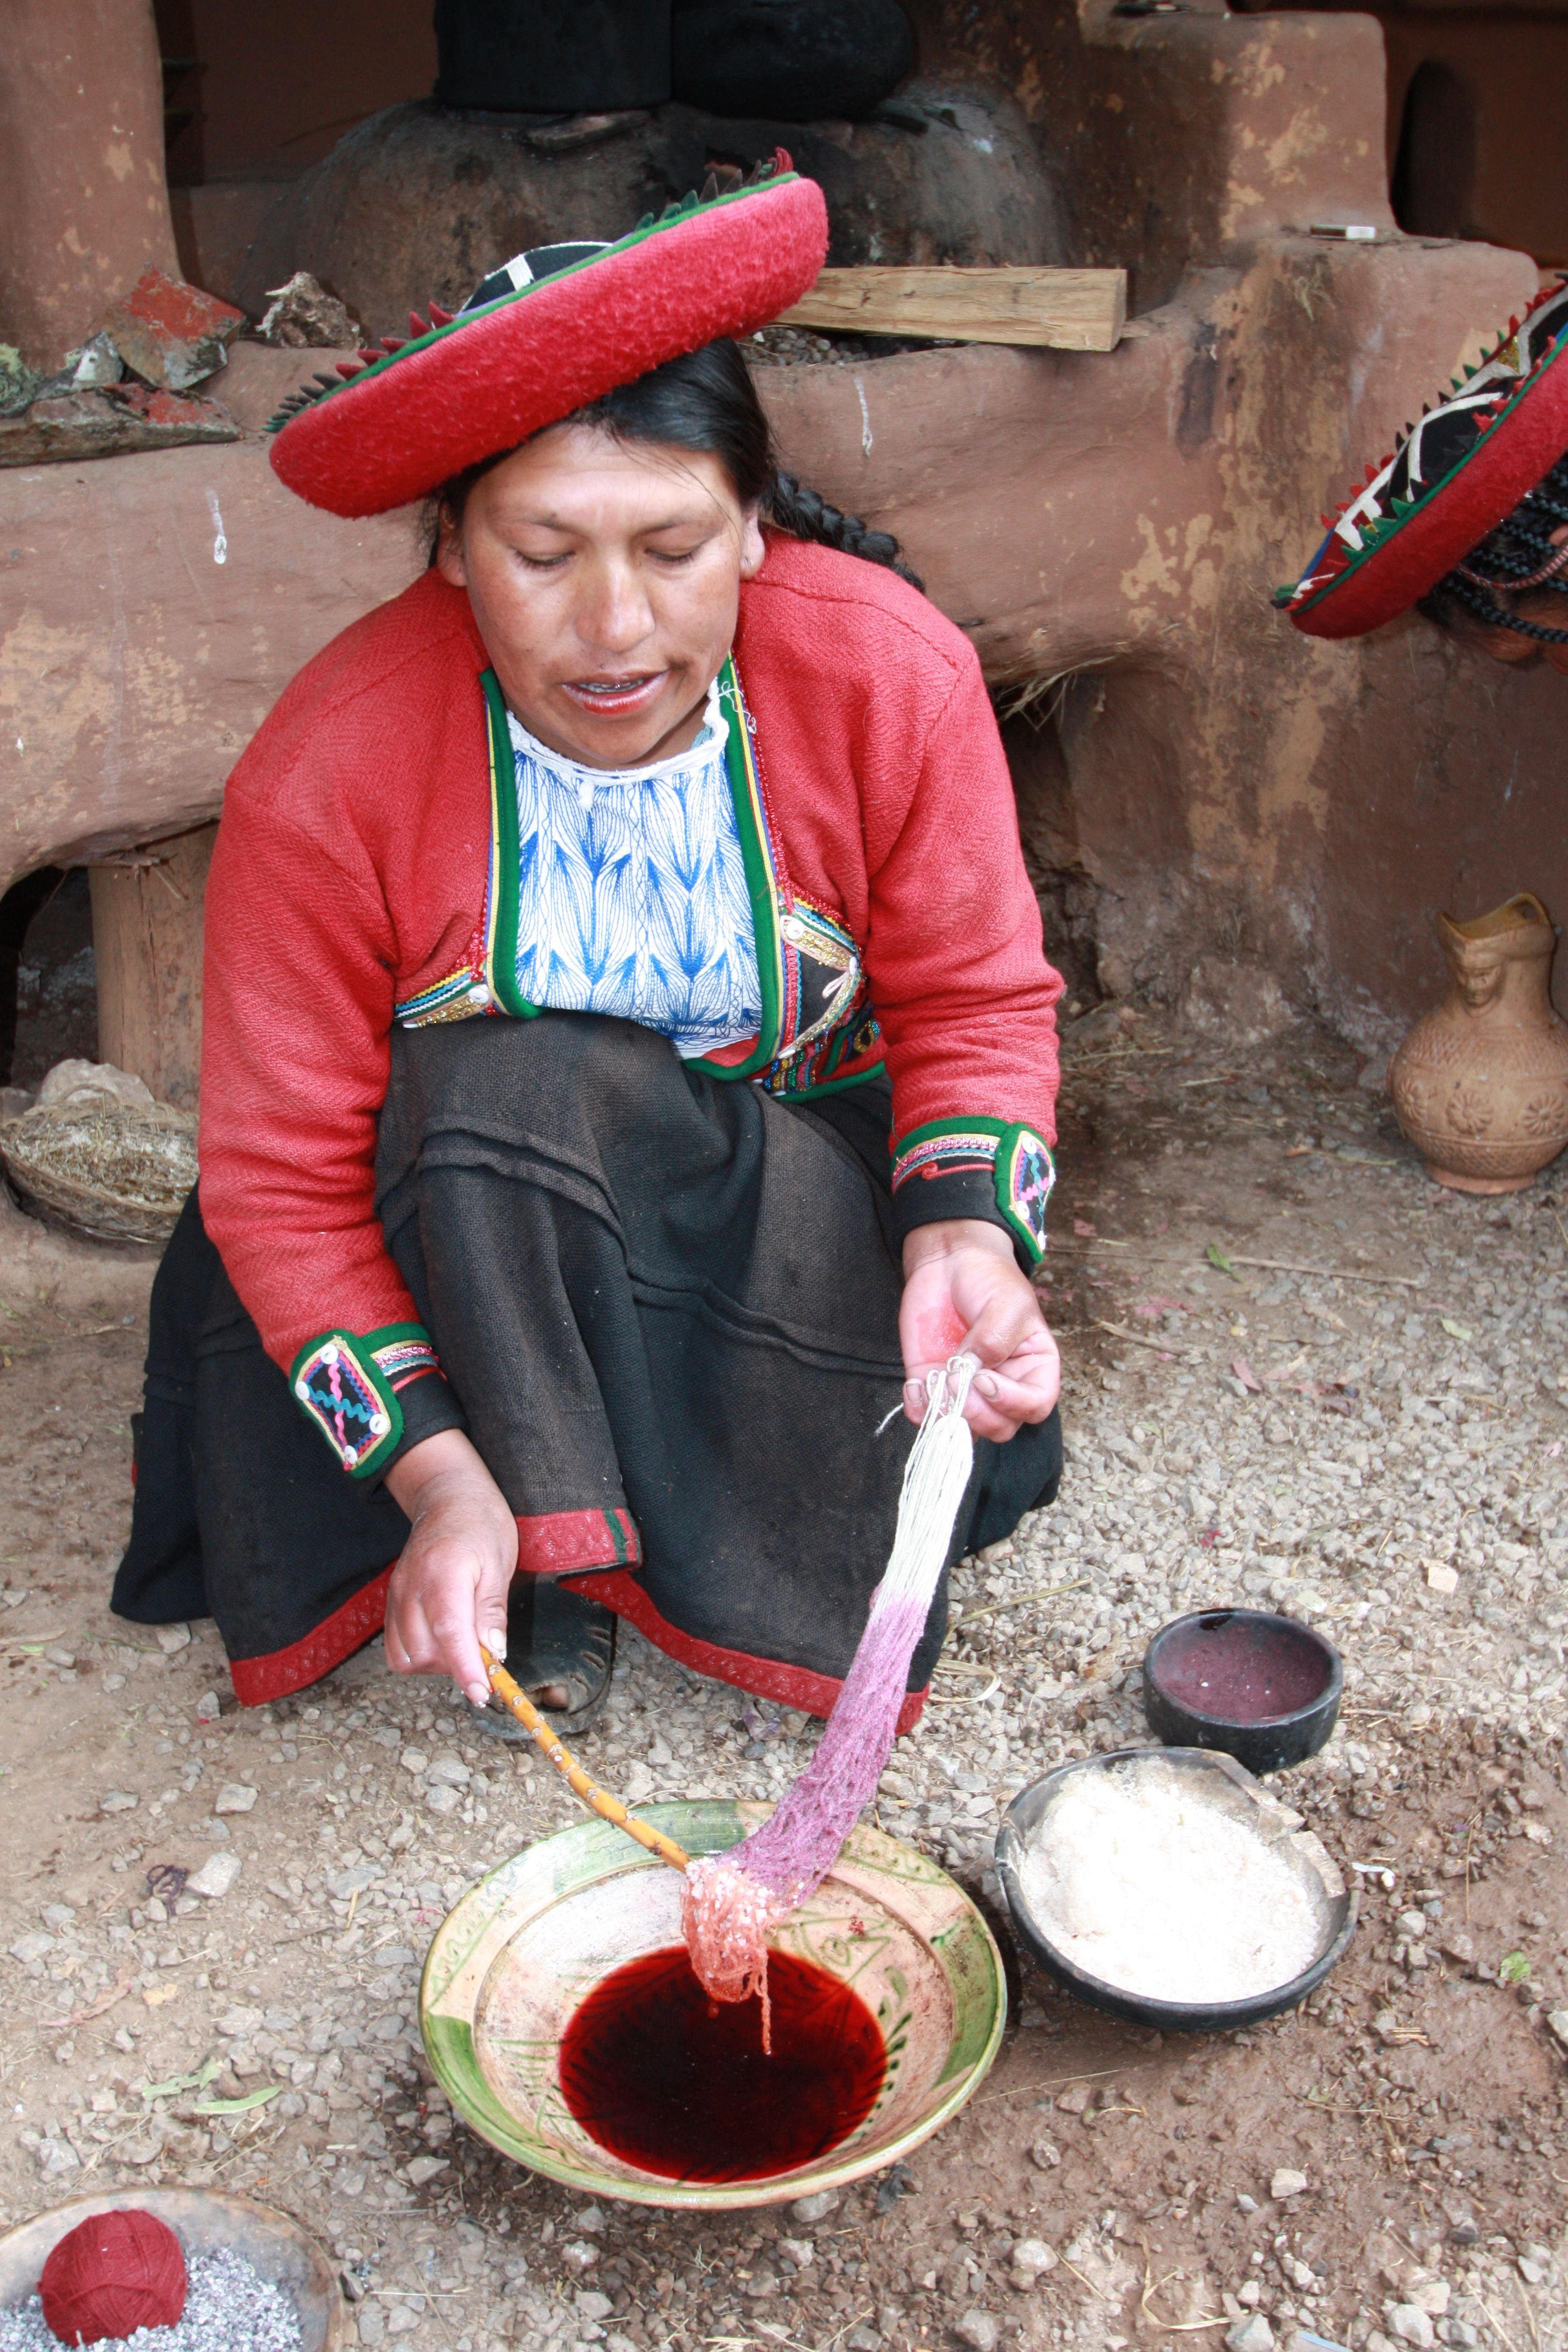 Hand dying of Alpaca fibers in Chinchero, Peru. These fibers will be dried and then woven into textiles on wooden looms in the same manner the Incas did for generations.